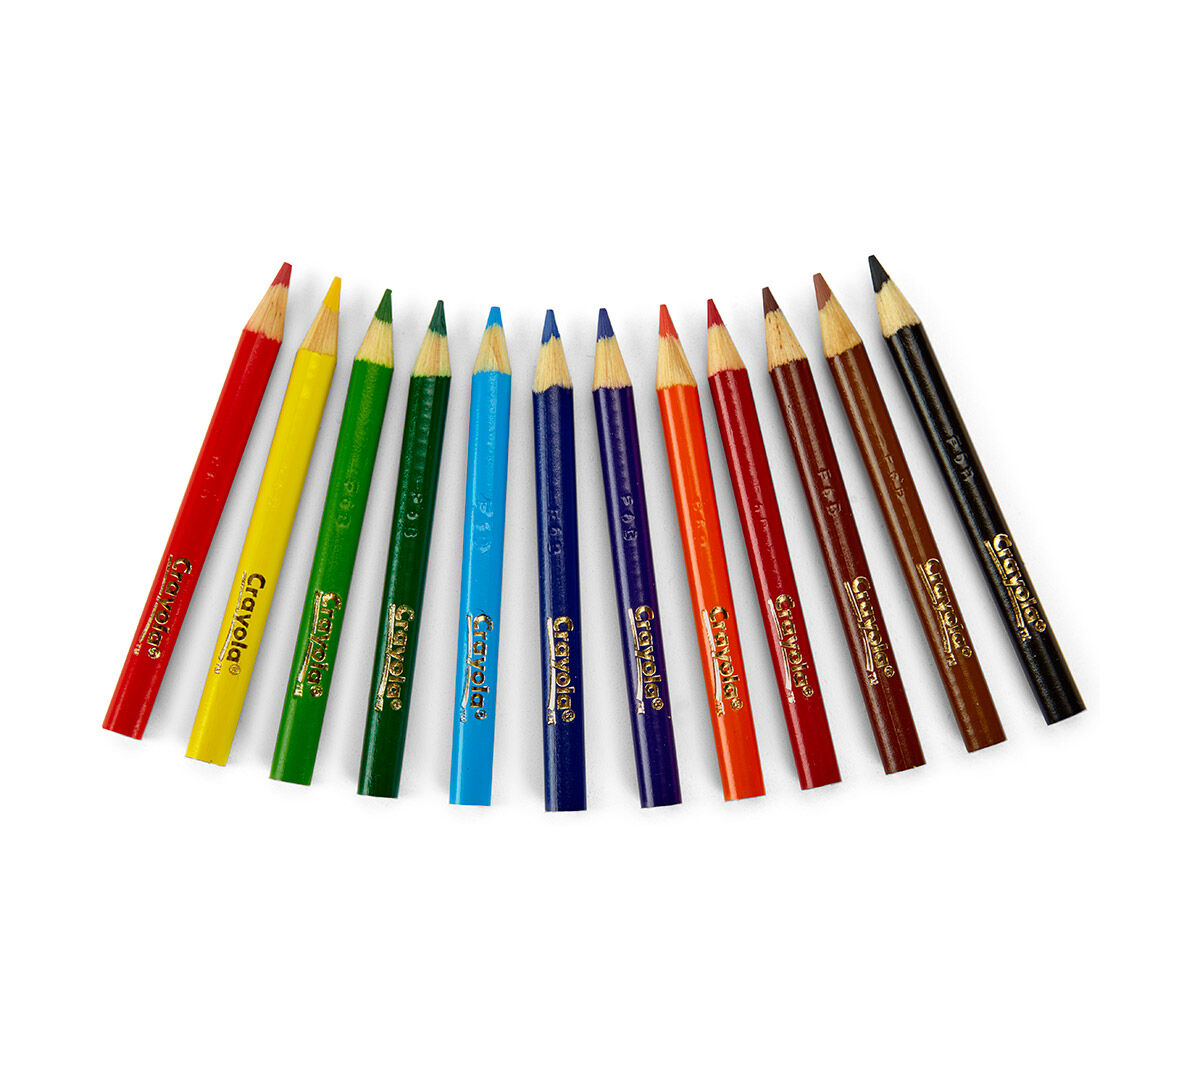 Crayola Colored Pencils, Assorted Colors, Pre-sharpened, Adult ...